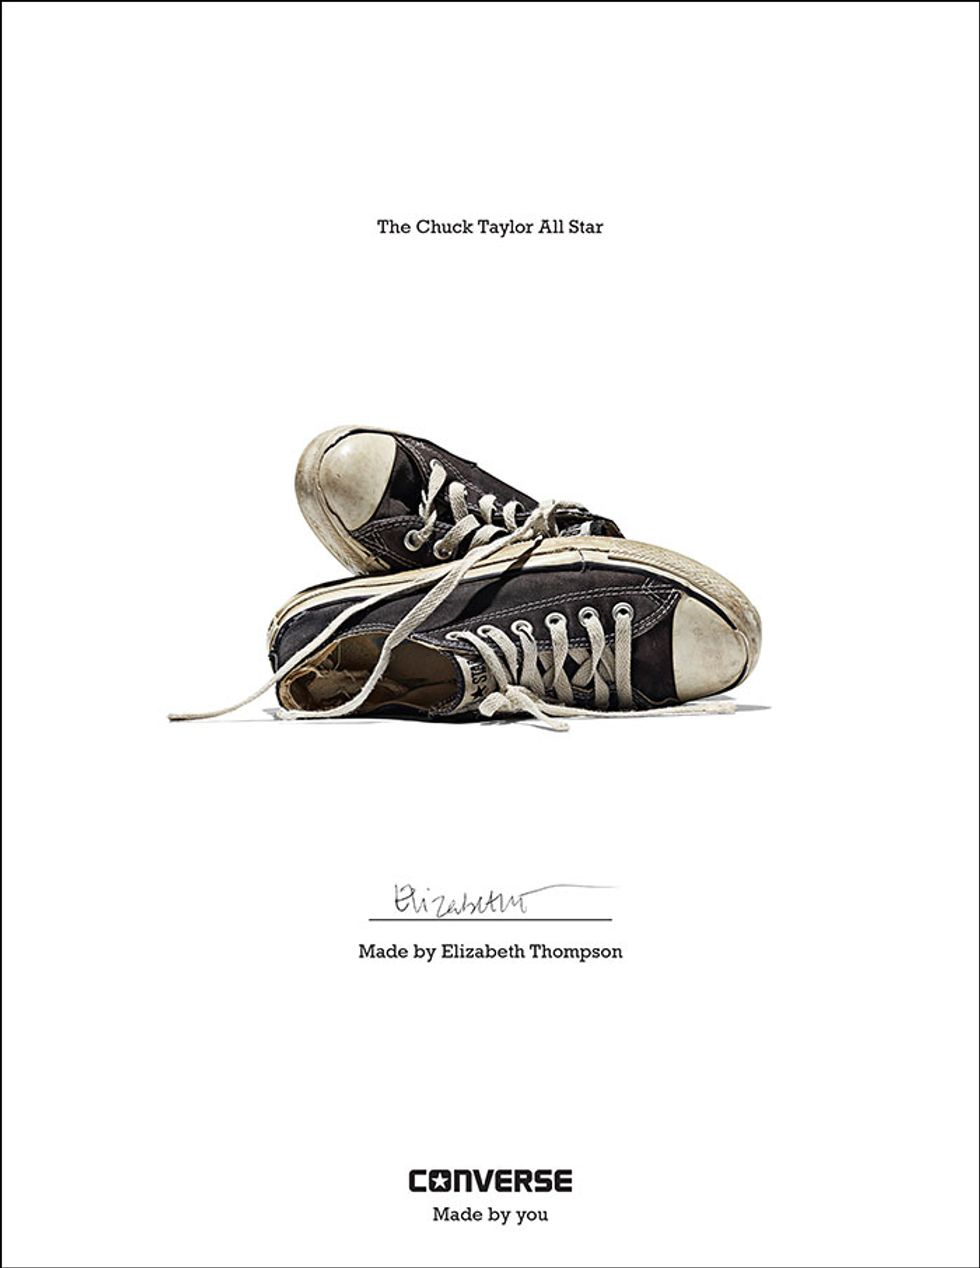 Patti Smith, Andy Warhol and PAPER Show Off Their Chucks